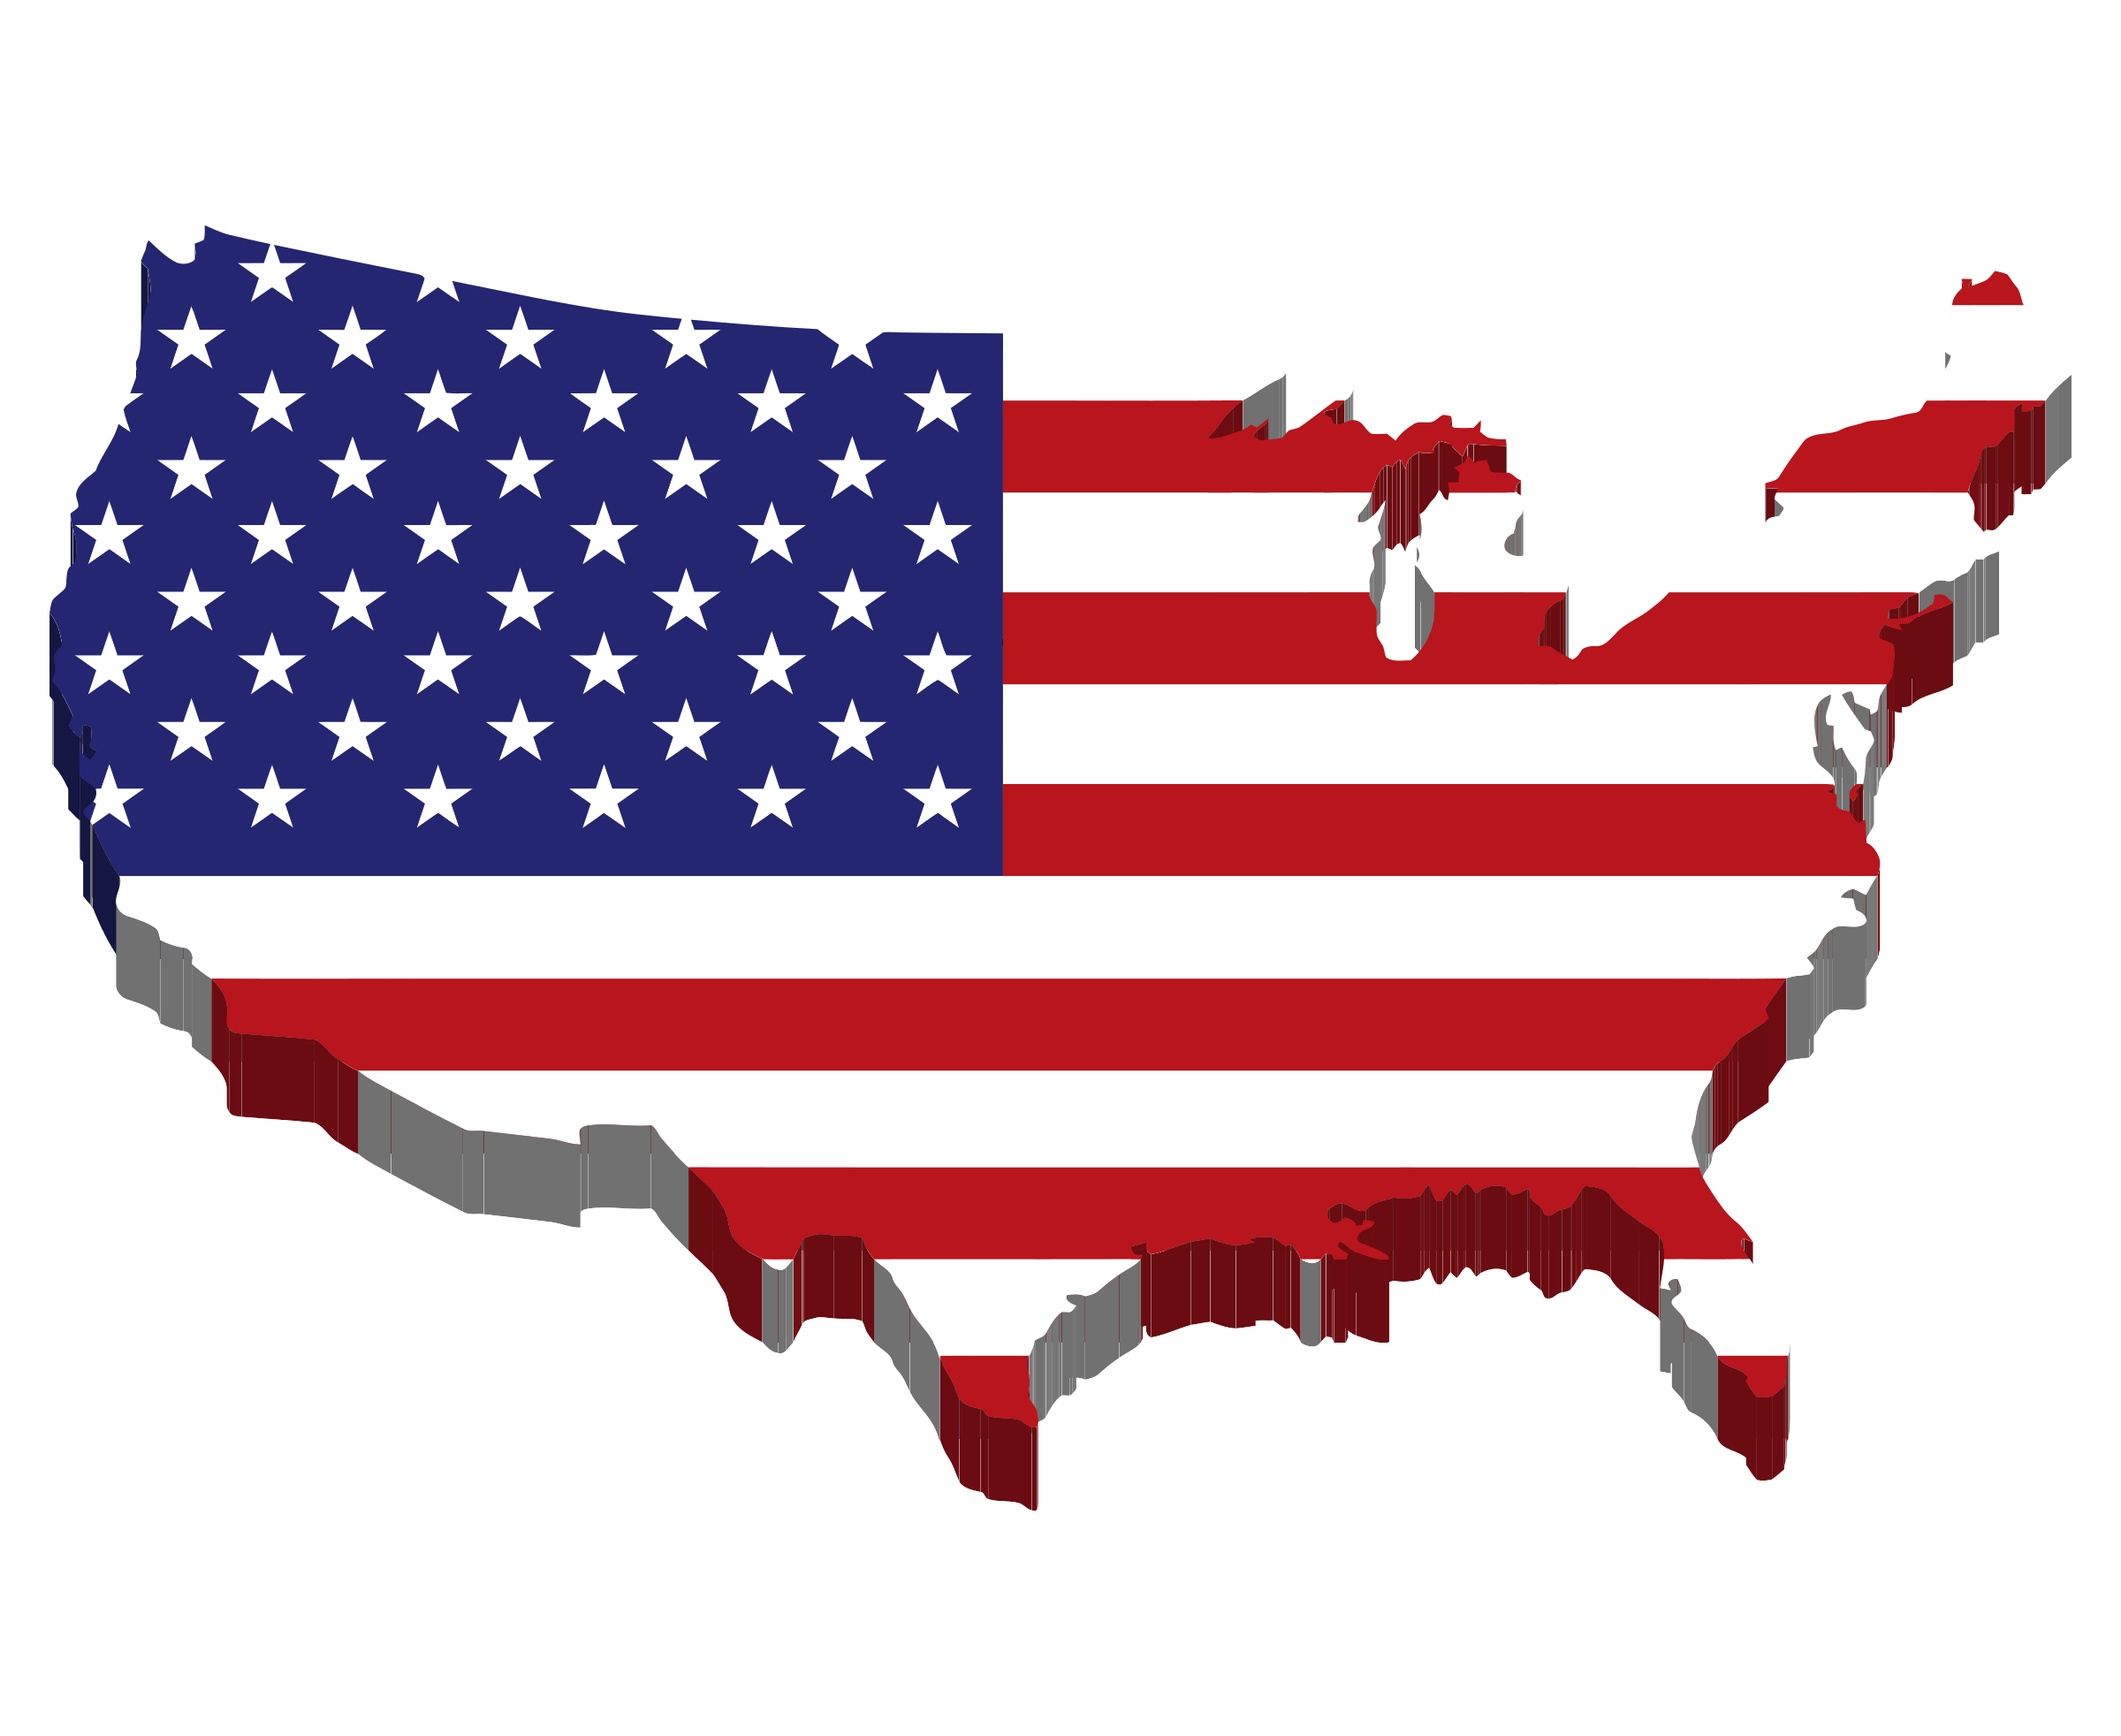 American Flag clipart worn Of Download States download Clipart